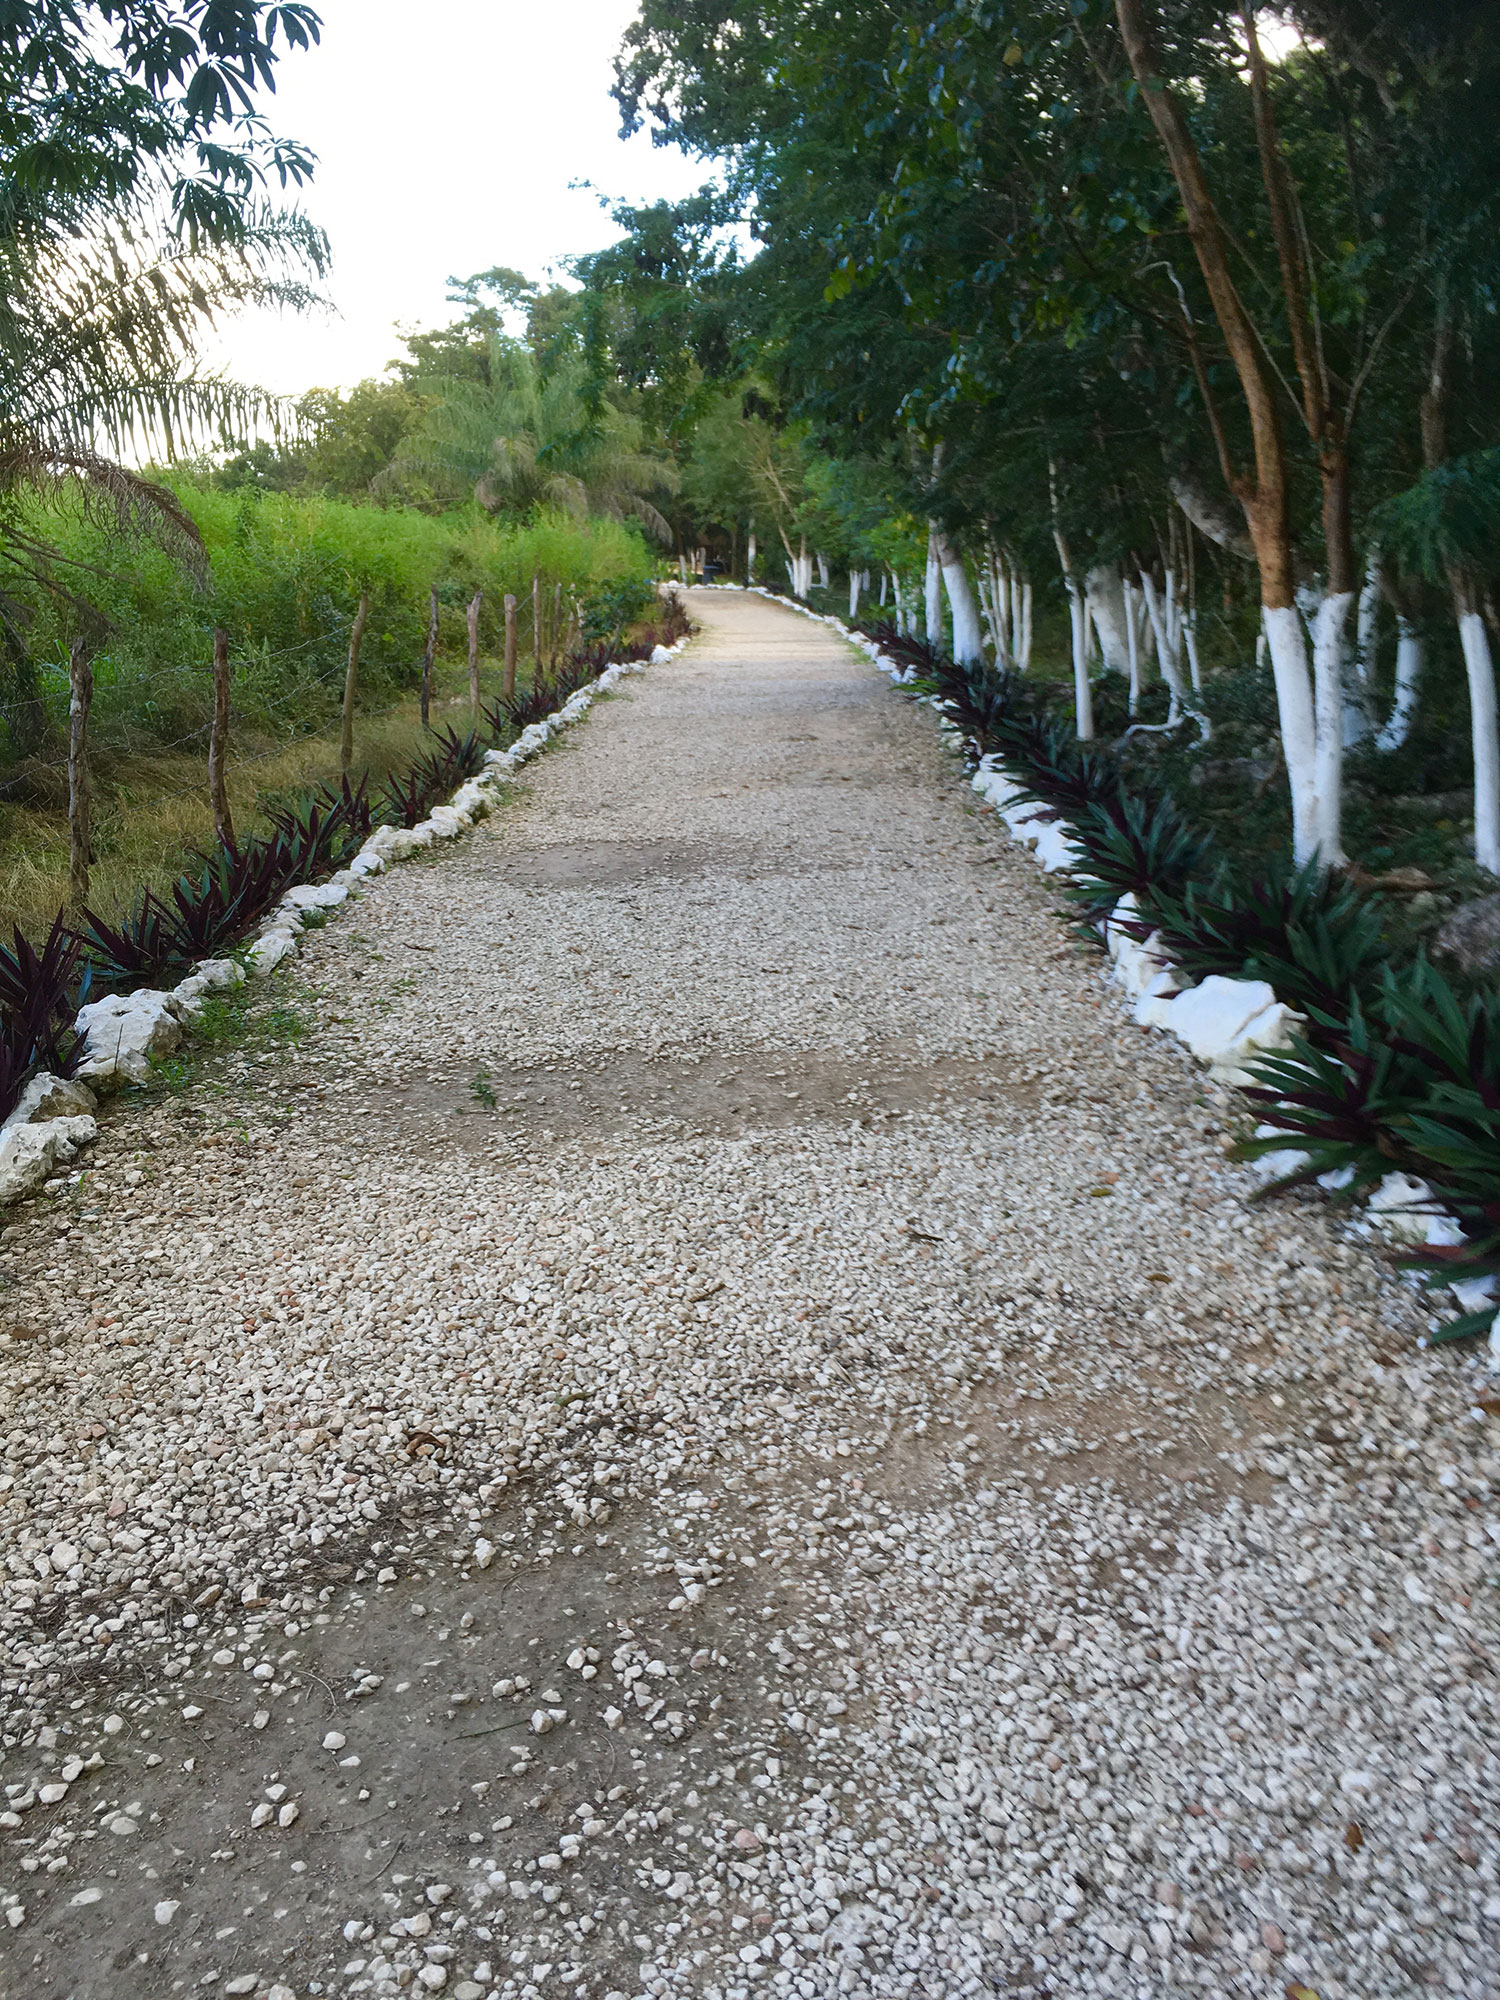 The path to the cave cenote.